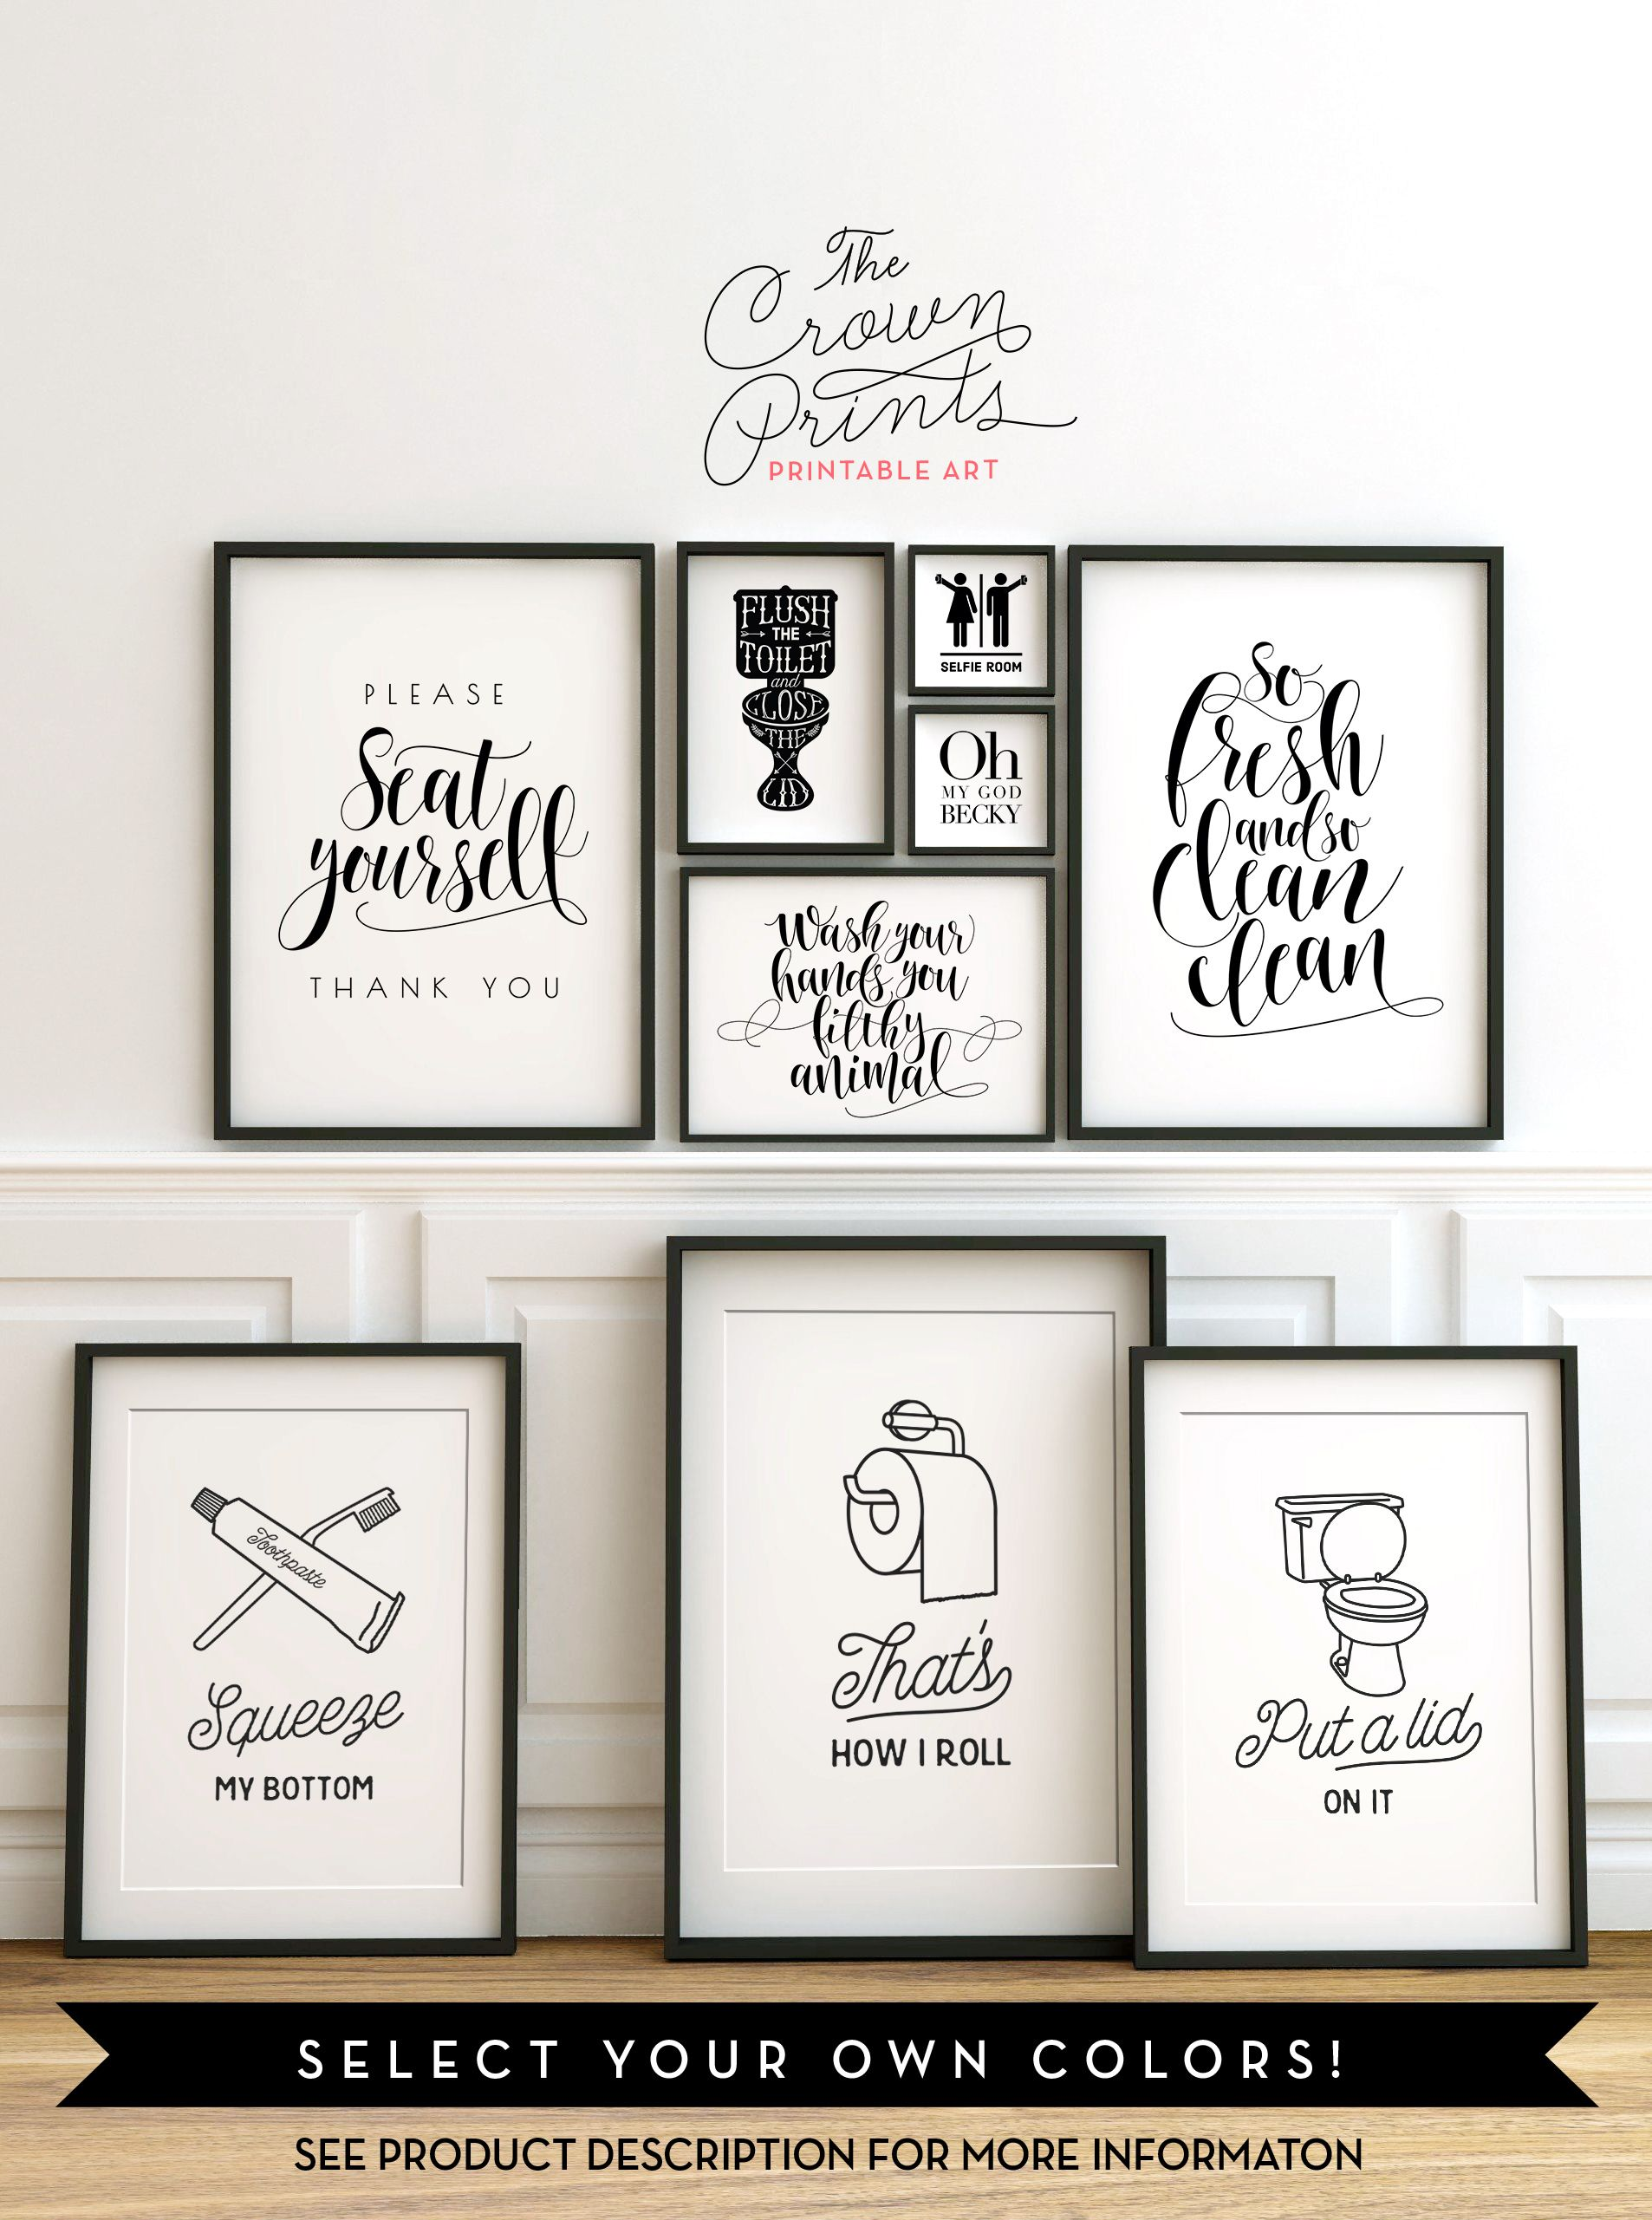 Printable bathroom wall art from the crown prints on etsy for Bathroom decor etsy